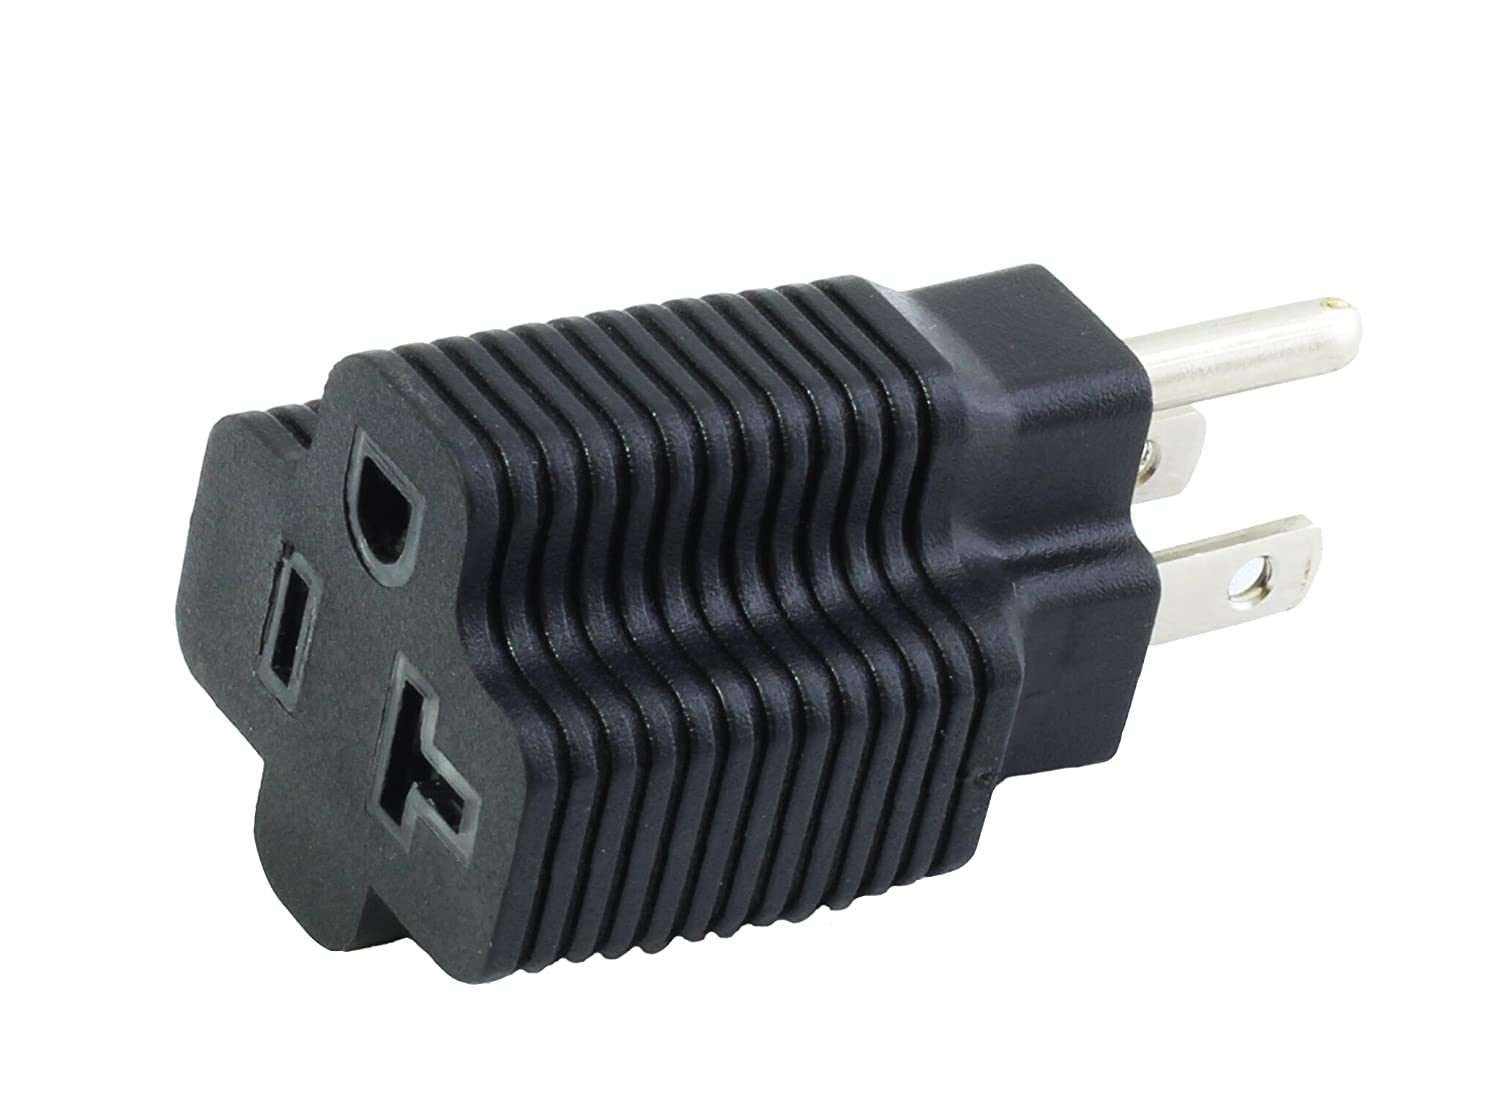 AC WORKS [XH515520] 15 Amp Household Plug to 20 Amp T-Blade Female Adapter AC Connectors M515520